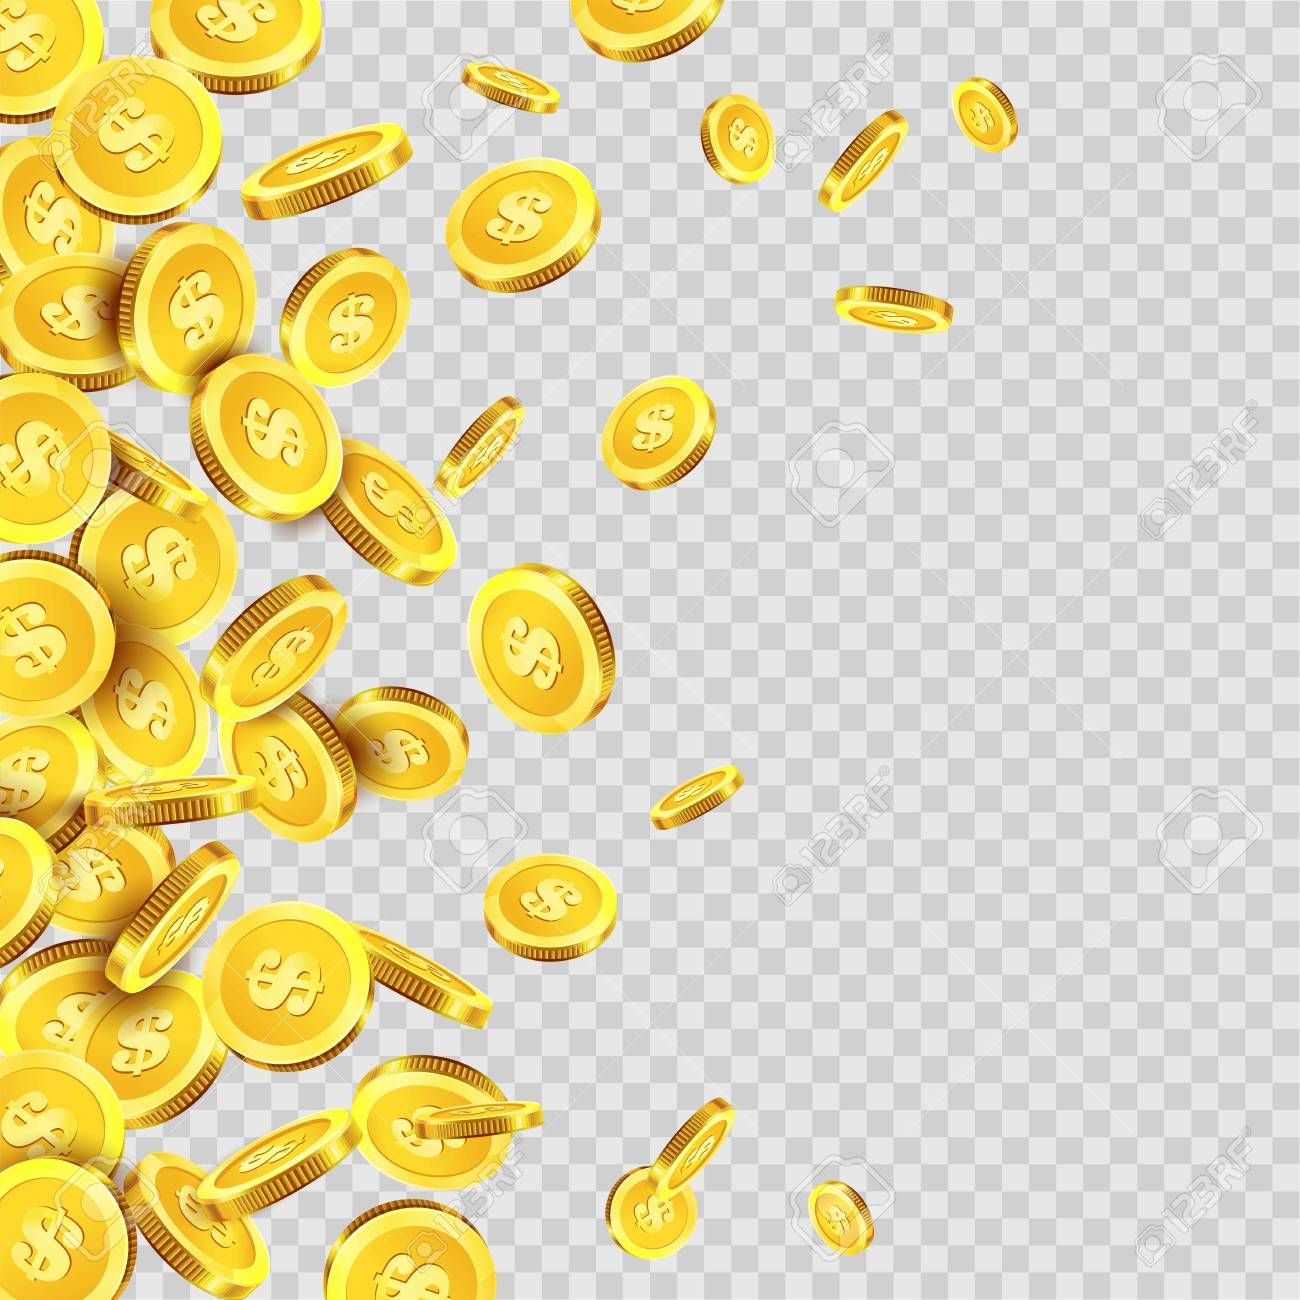 Gold coins rain falling or golden money dollar or cent metal coin on transparent background. Vector cash jackpot or fortune money fall splash - 85721576